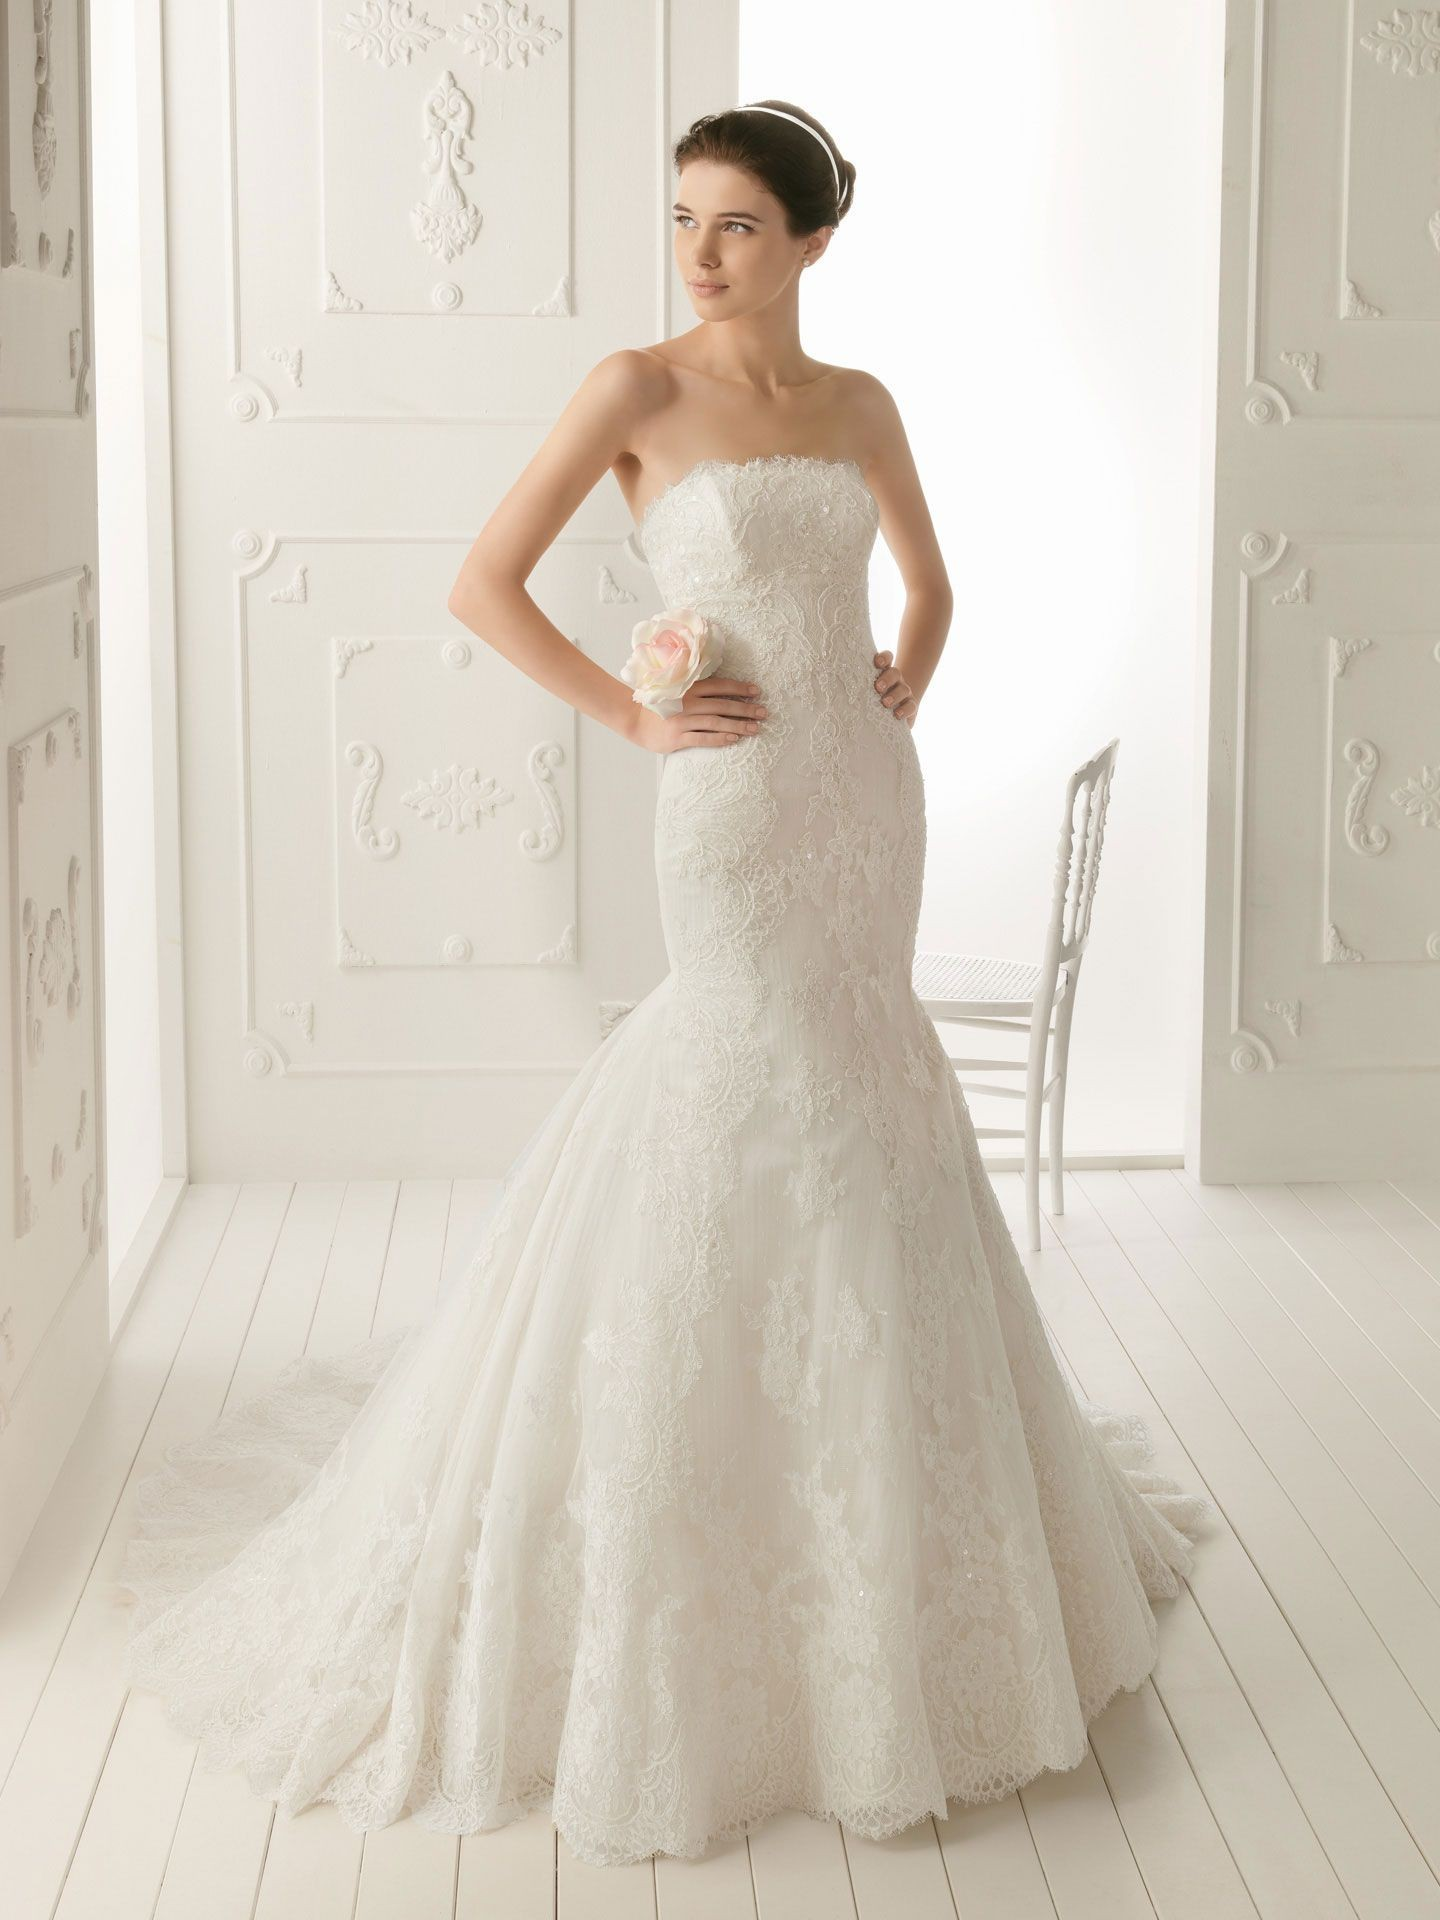 Strapless Mermaid Wedding Dress